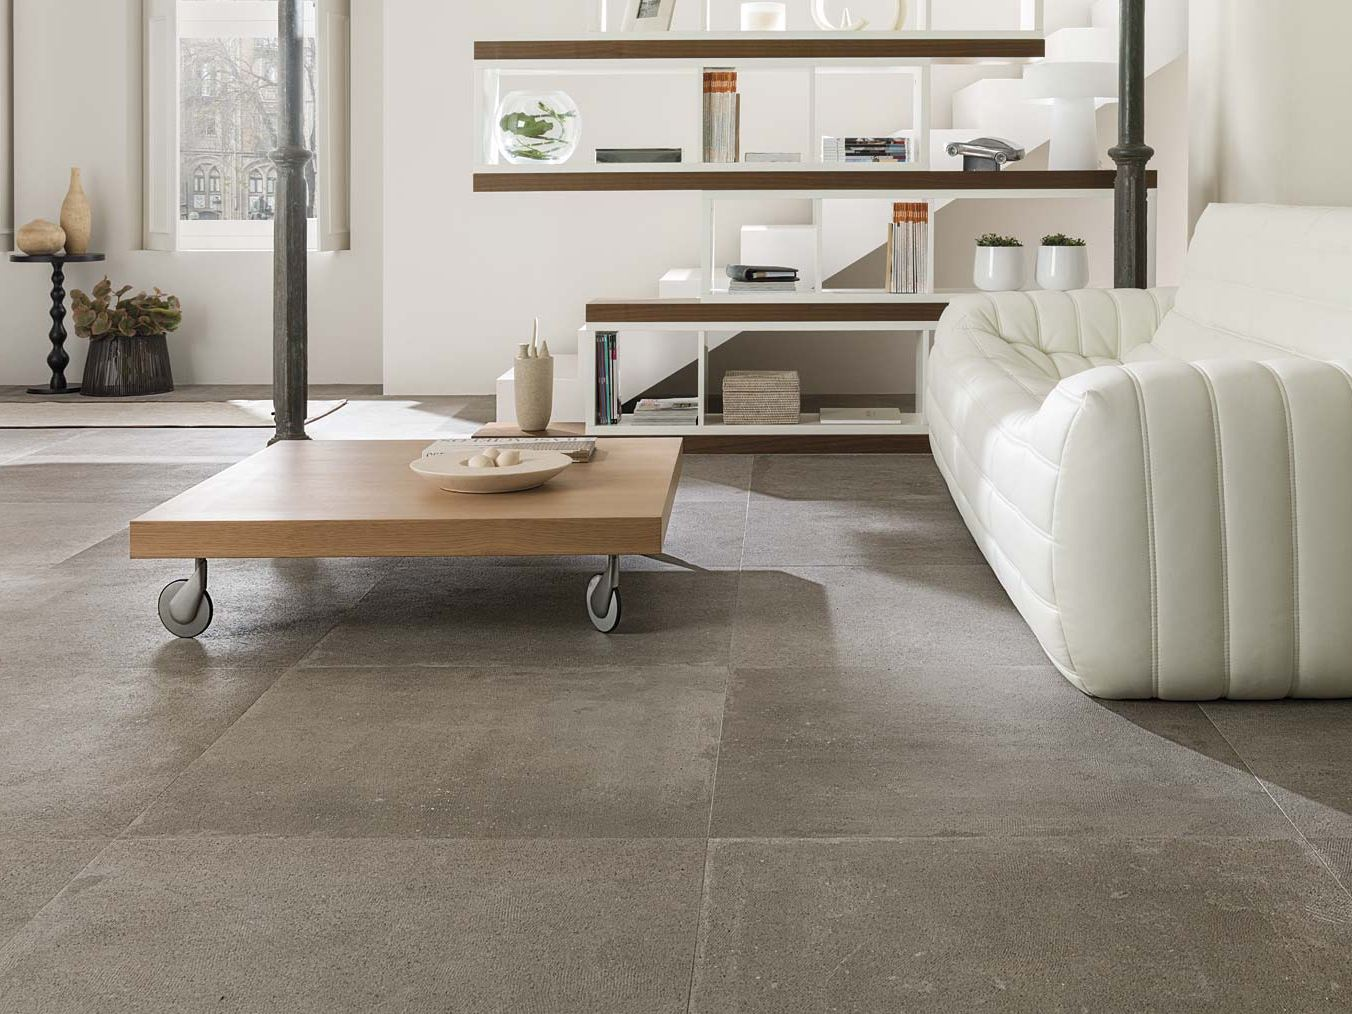 Rev tement de sol mur ston ker dover collection ston for Porcelanosa carrelage sol